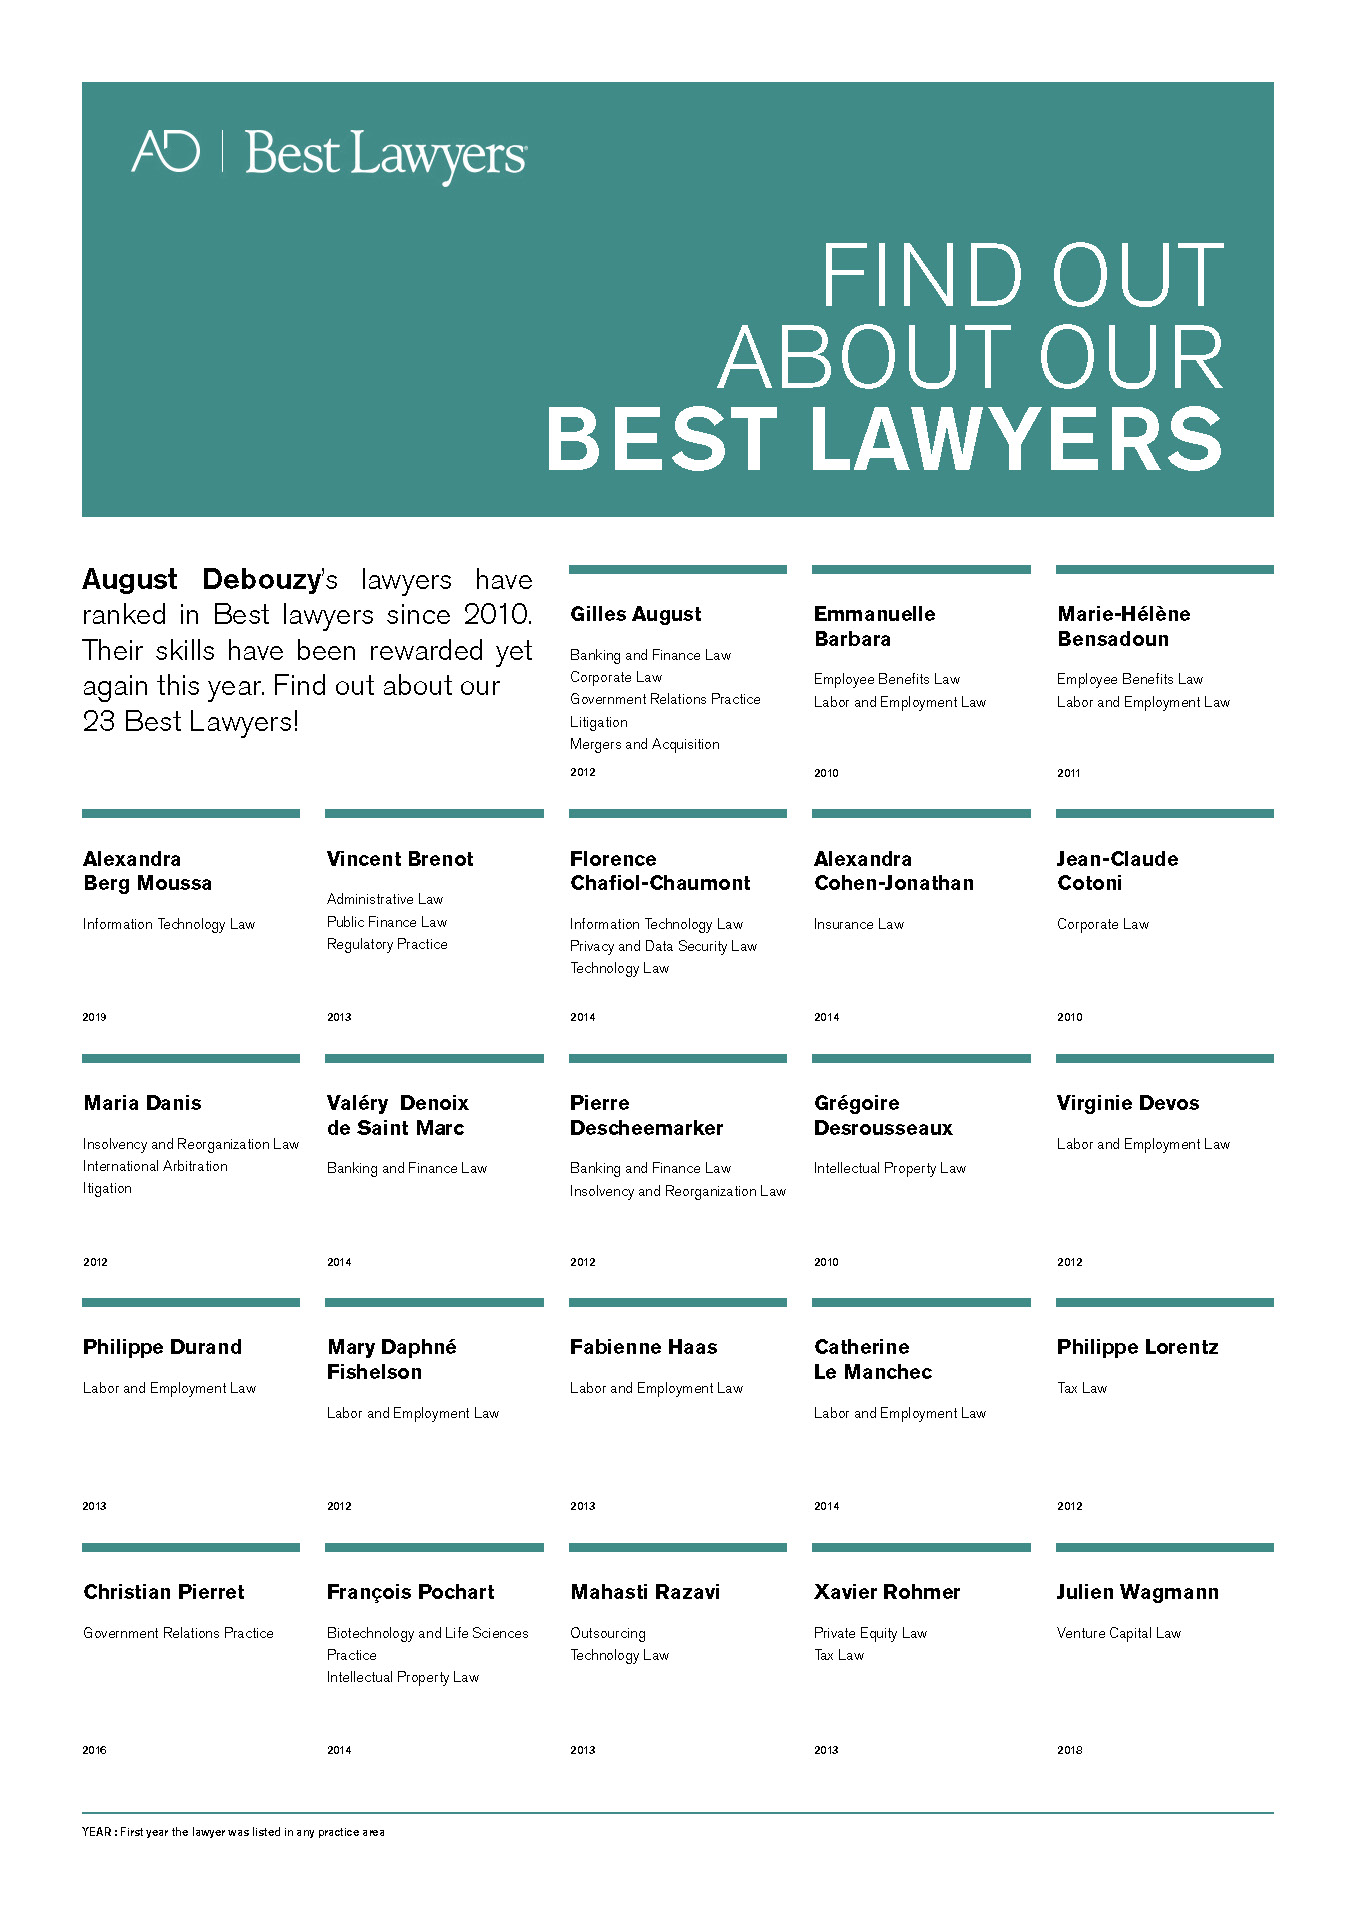 AD Best Lawyers - 2019 Edition